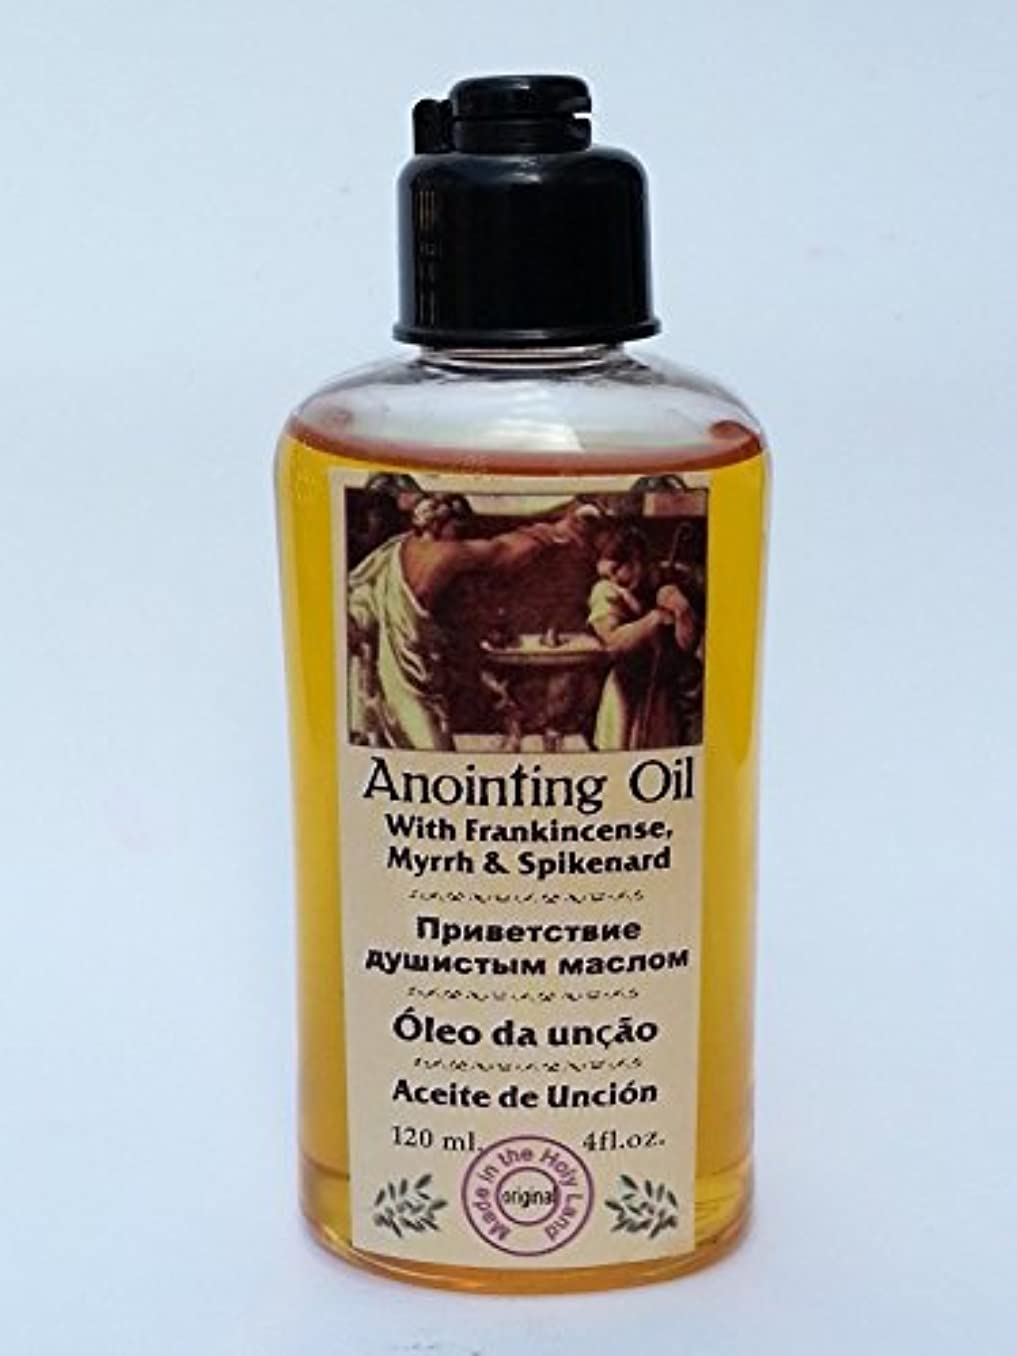 オフセット守銭奴近似Anointing Oil with Frankincense、Myrrh and Spikenard 120 ml byベツレヘムギフトTM